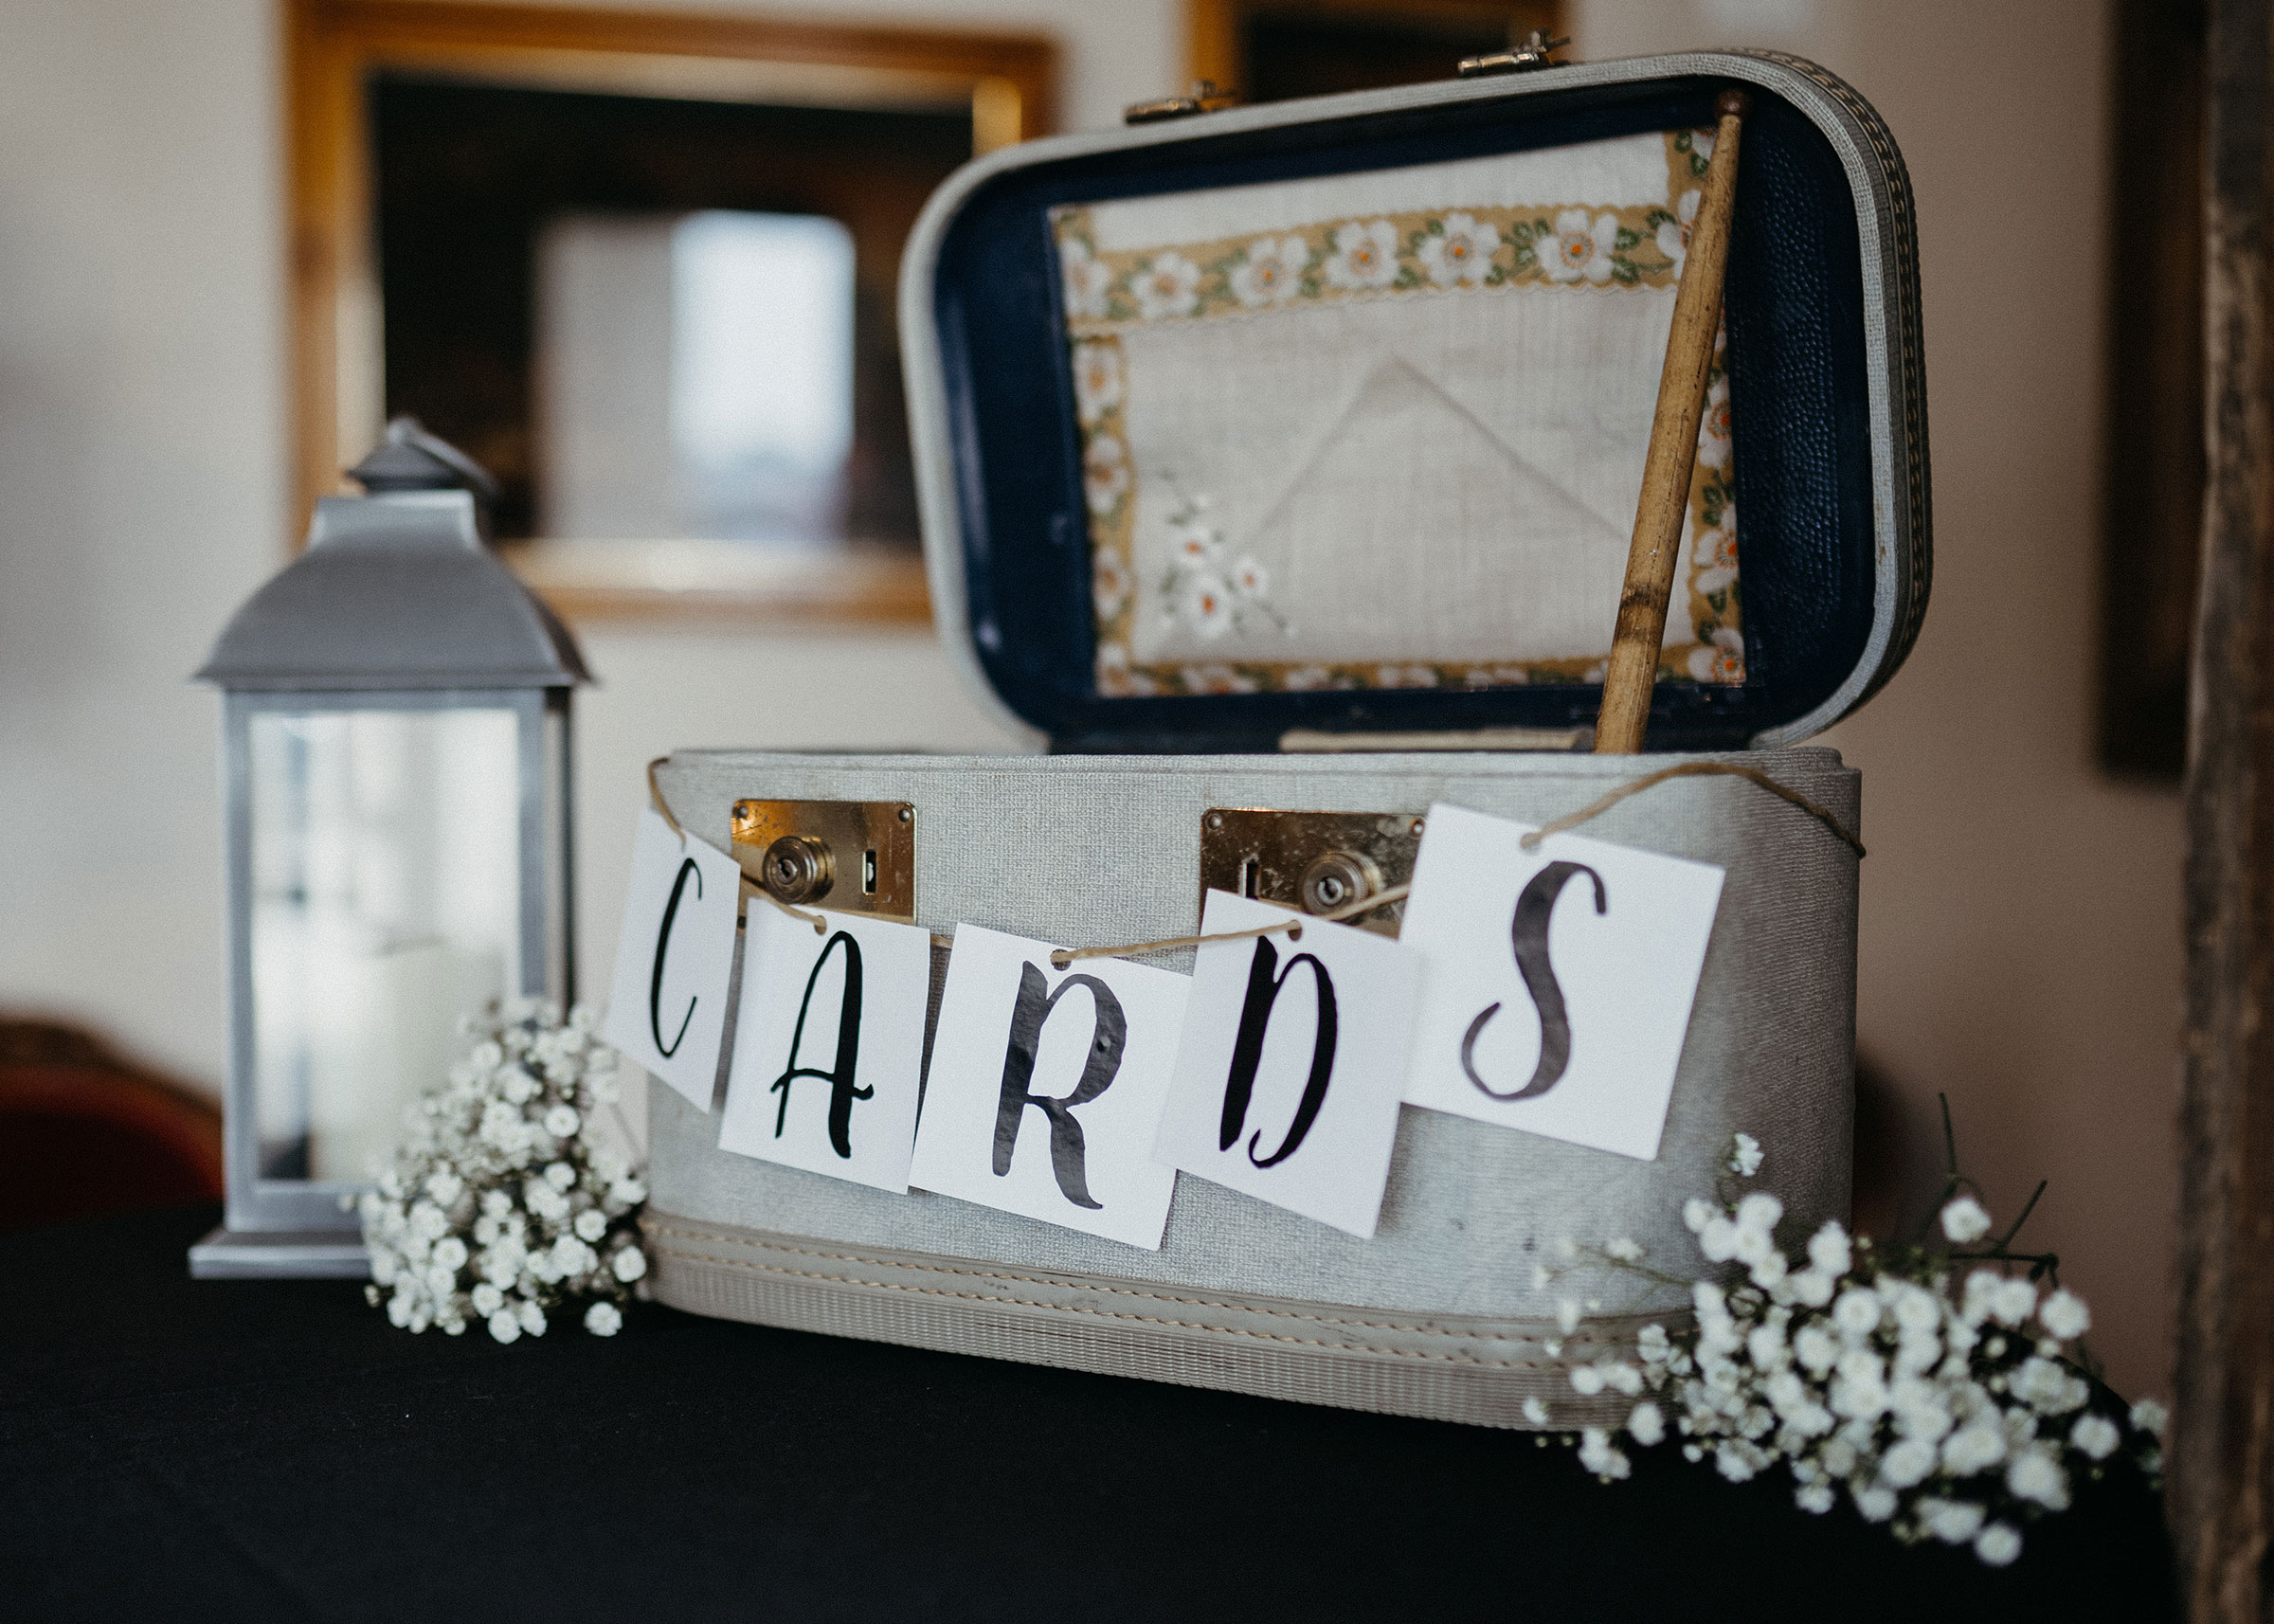 card-box-for-guests-decades-event-center-building-desmoines-iowa-raelyn-ramey-photography..jpg